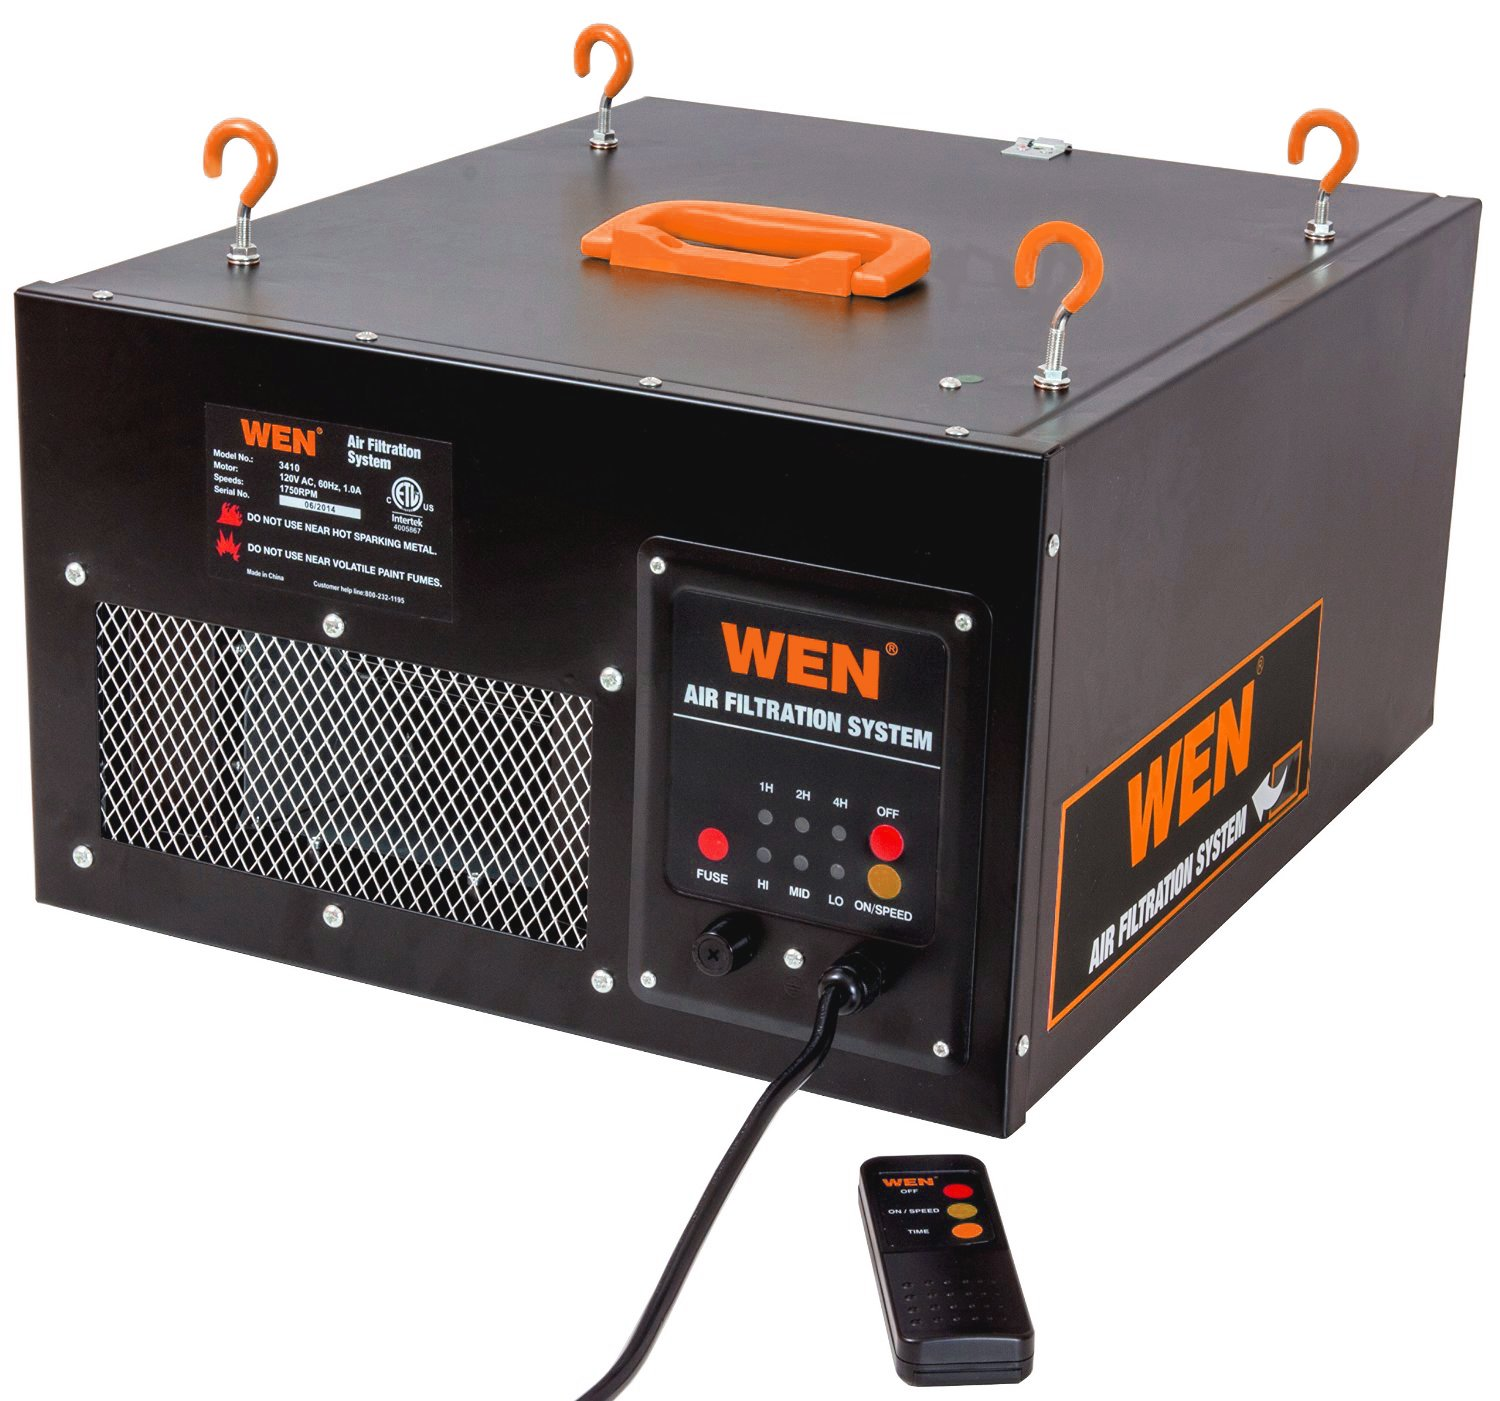 WEN 3410 3-Speed Remote-Controlled Air Filtration System by WEN (Image #1)